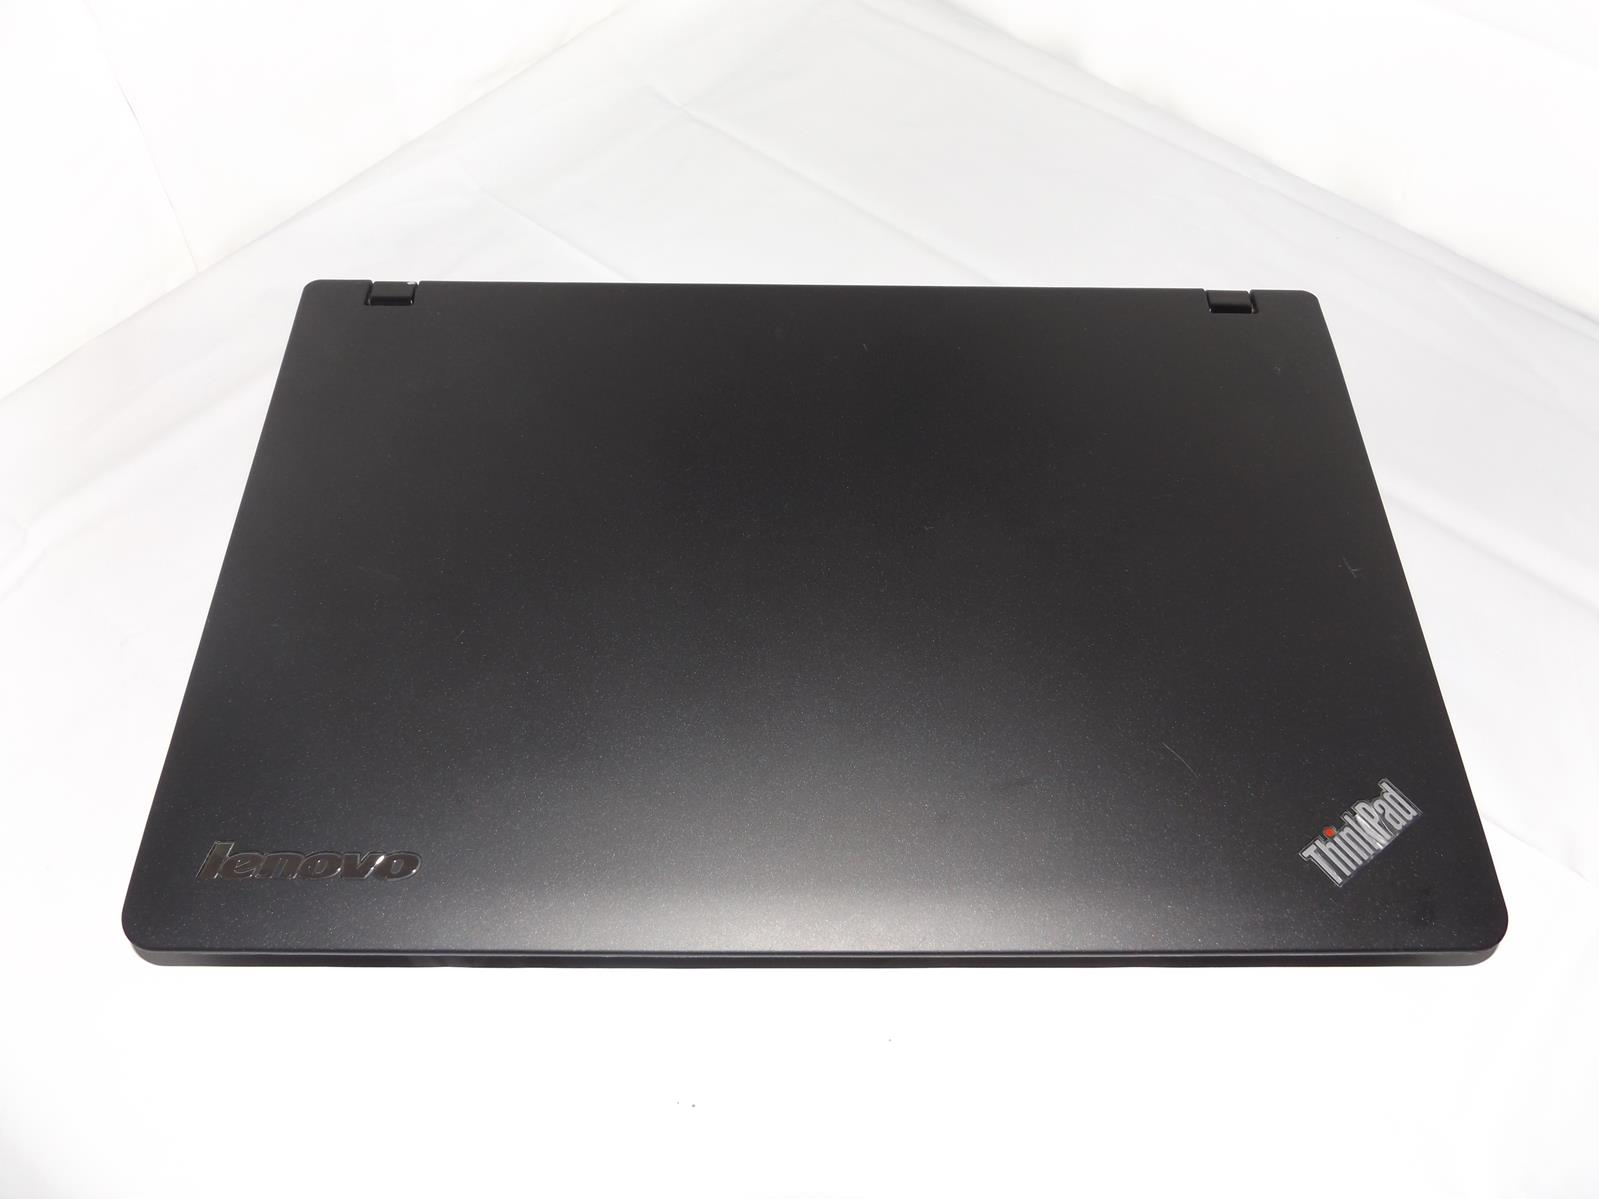 lenovo adu thinkpad edge e laptop i m ghz gb lenovo 1143 adu thinkpad edge e520 laptop i3 2350m 2 30 ghz 4gb 320gb 30480